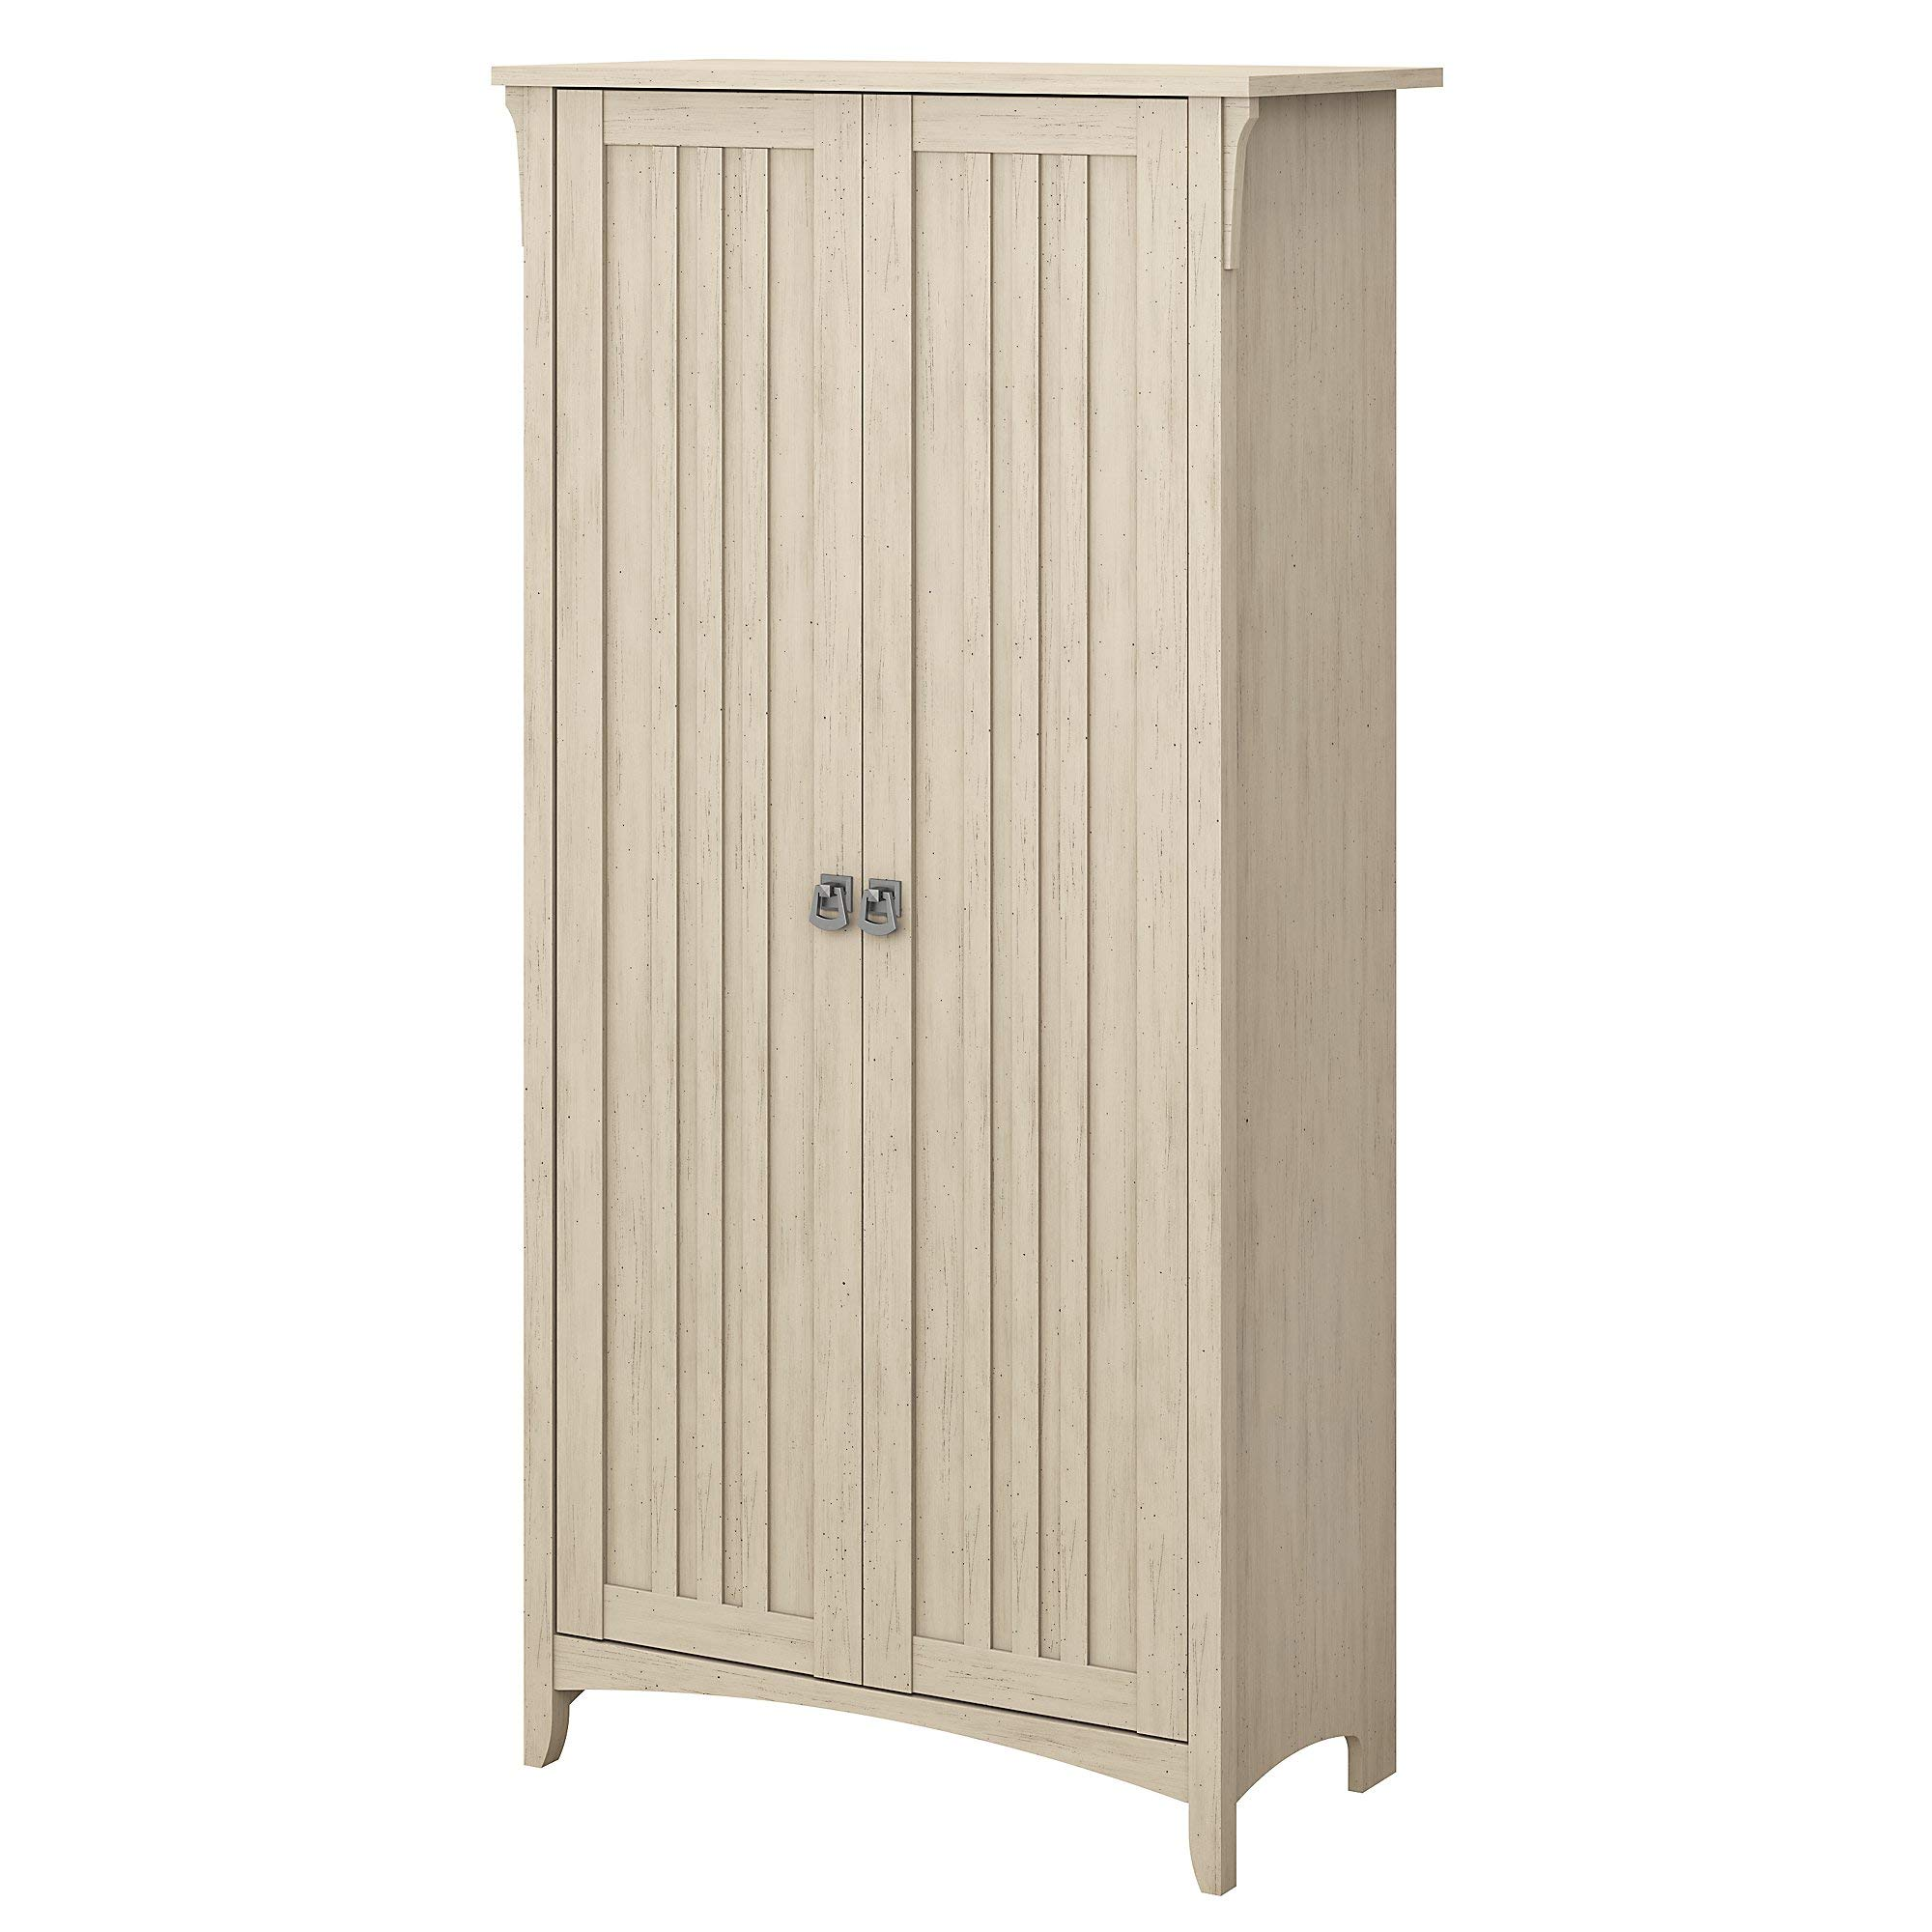 Bush Furniture Salinas Kitchen Pantry Cabinet with Doors in Antique White by Bush Furniture